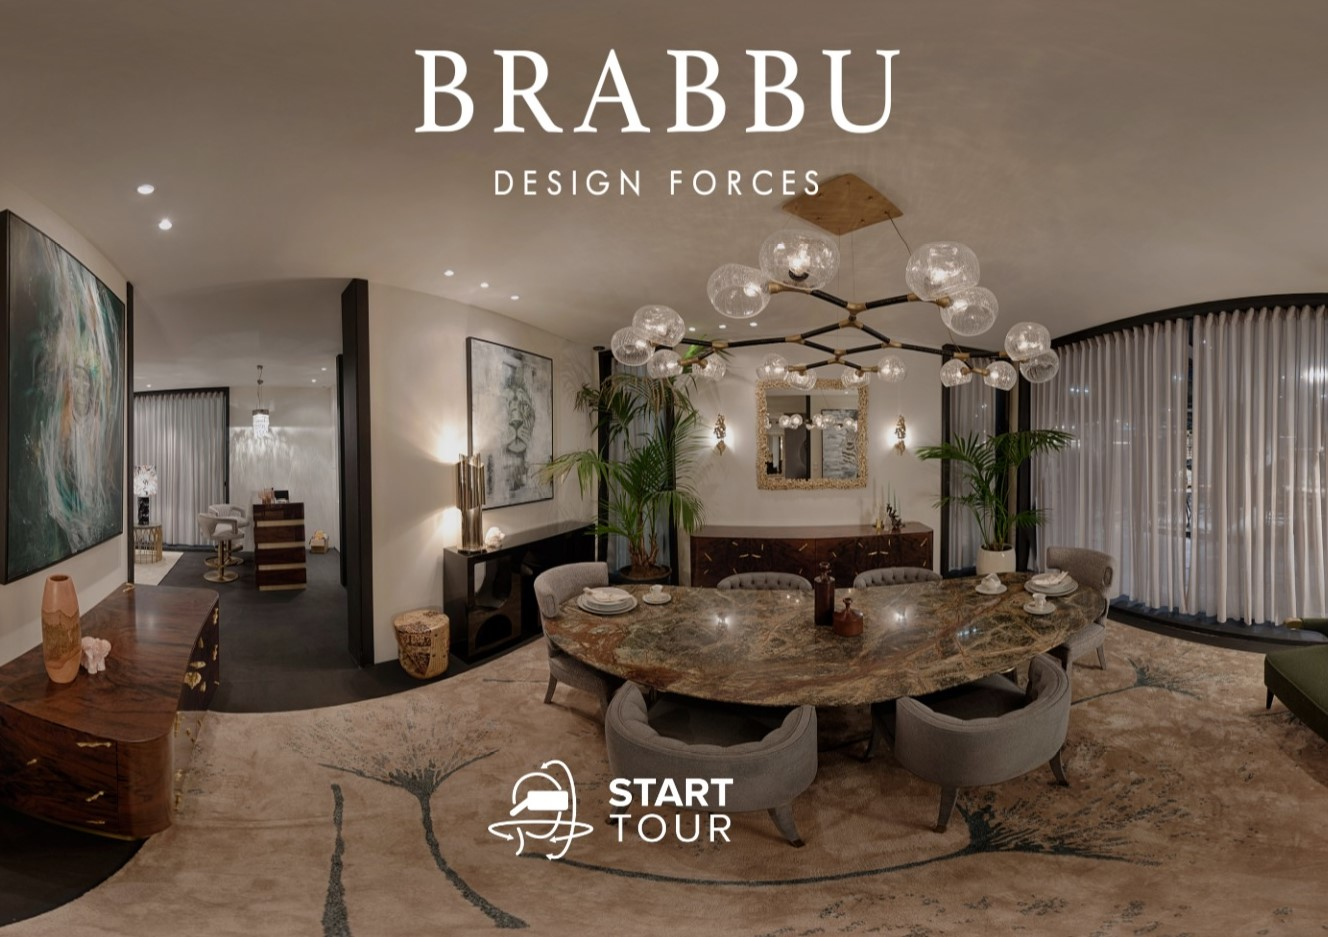 Maison Et Objet 2020: Luxury Stands' Virtual Tour  maison et objet 2020 Maison Et Objet 2020: Luxury Stands' Virtual Tour  maison objet 2020 luxury stands virtual tour 4